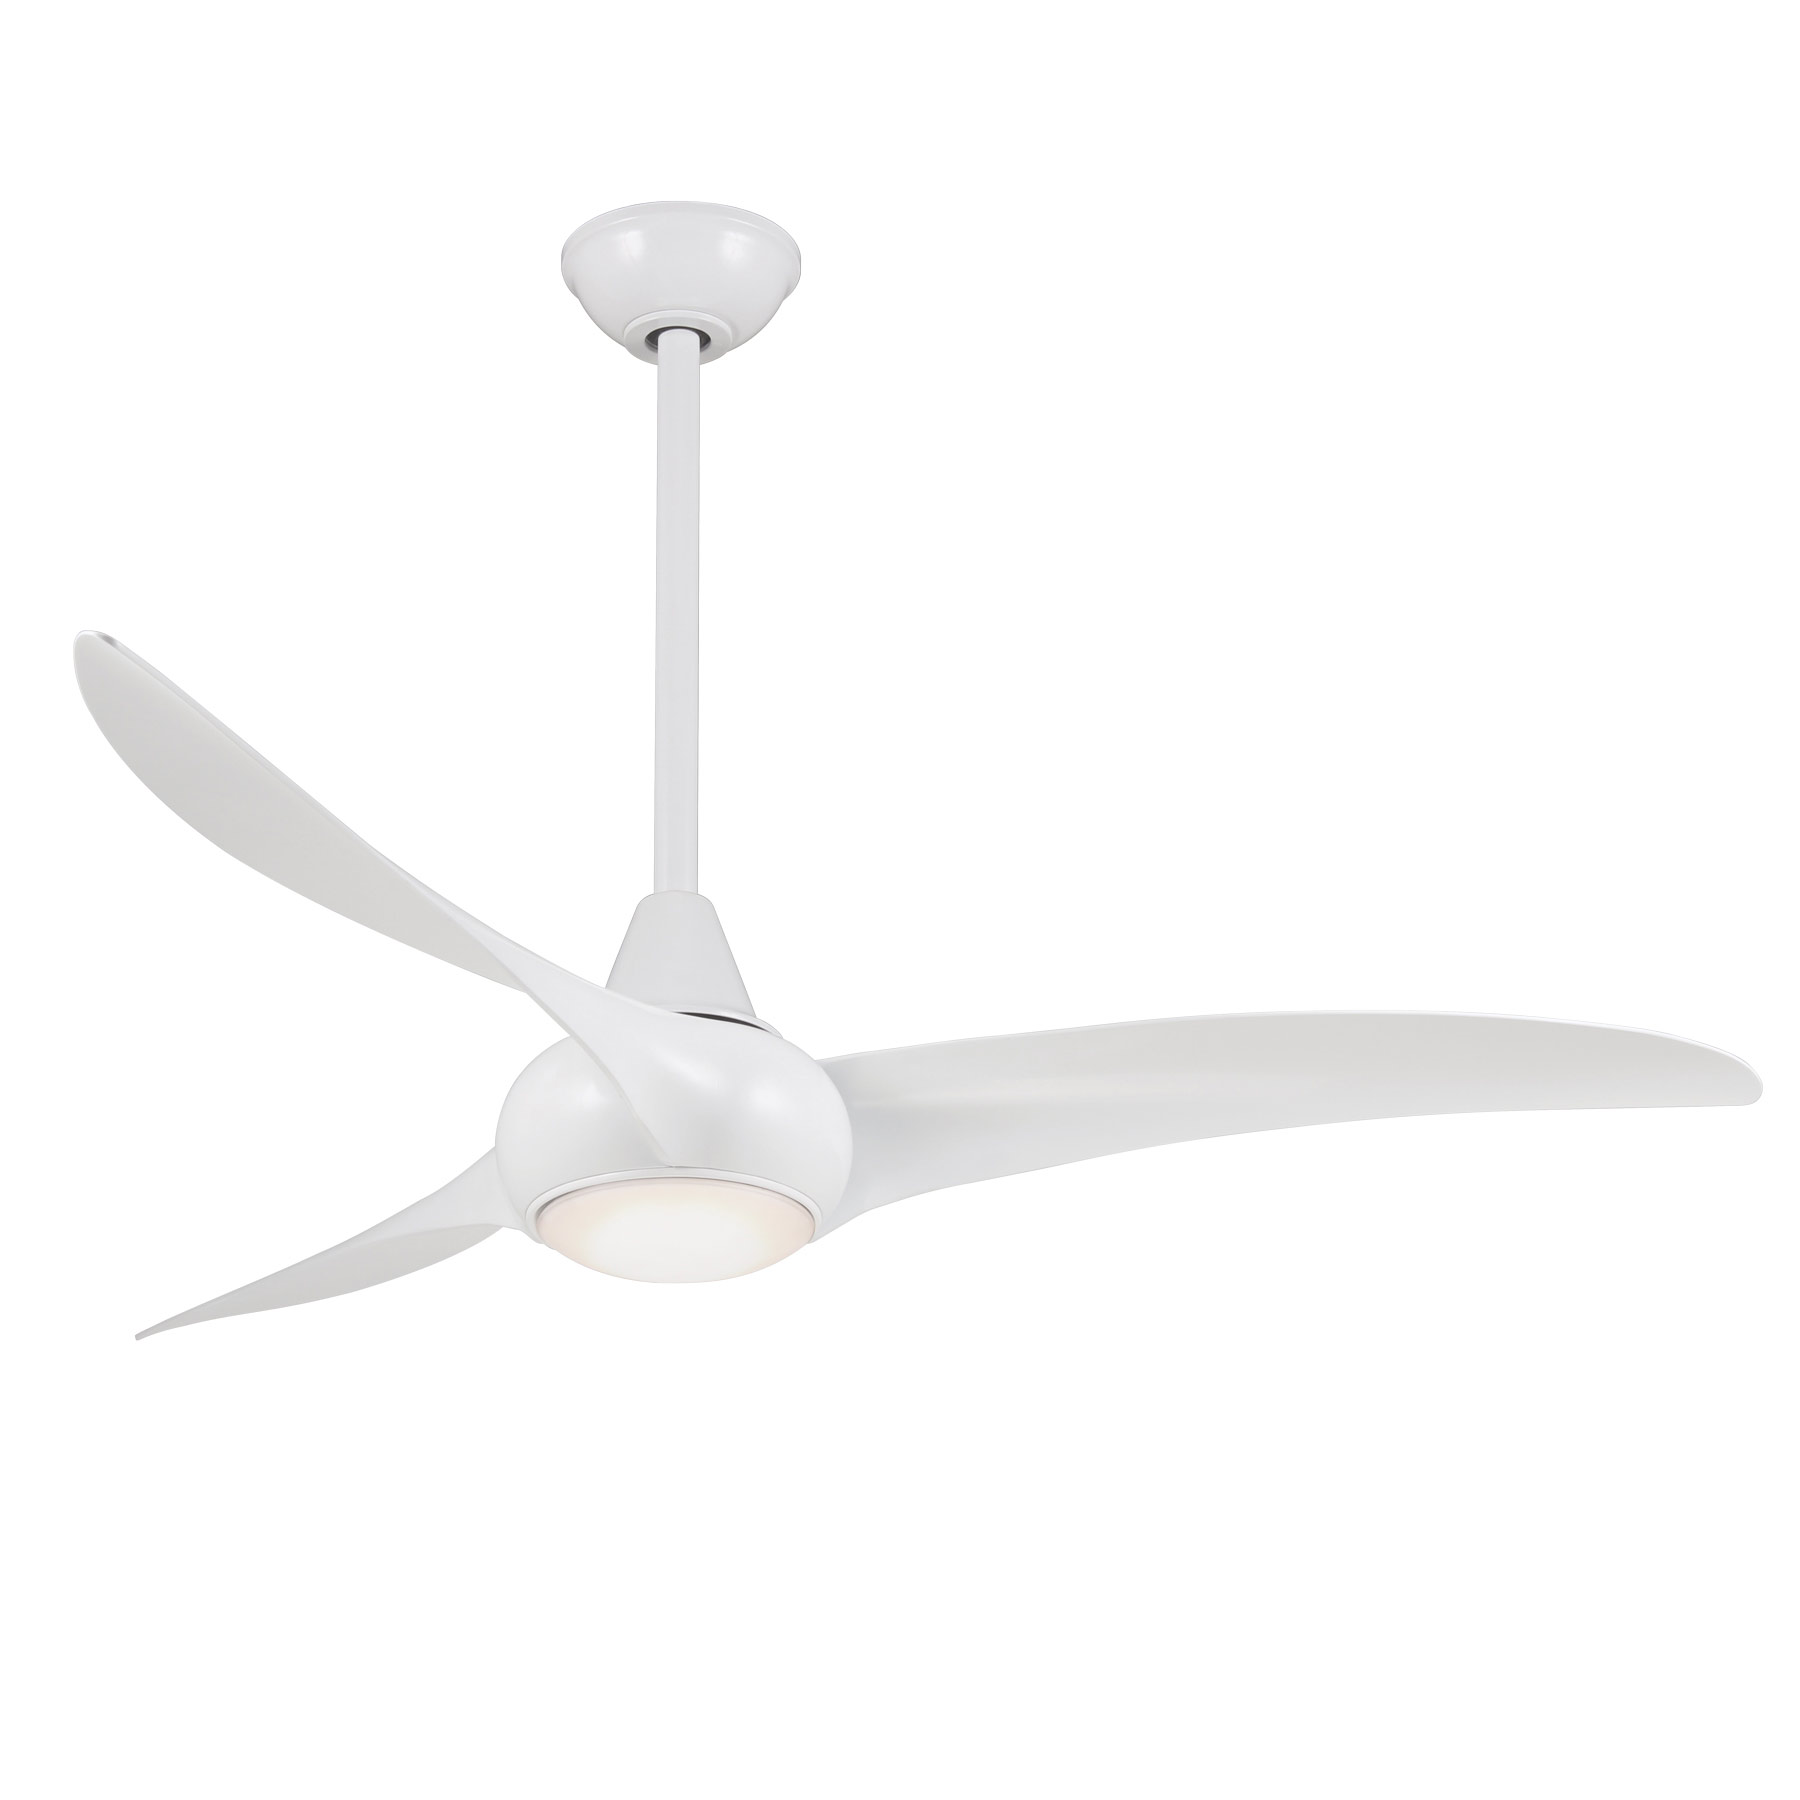 white image fans lights wave by ceiling led ceilings wh download aire index fan with minka light